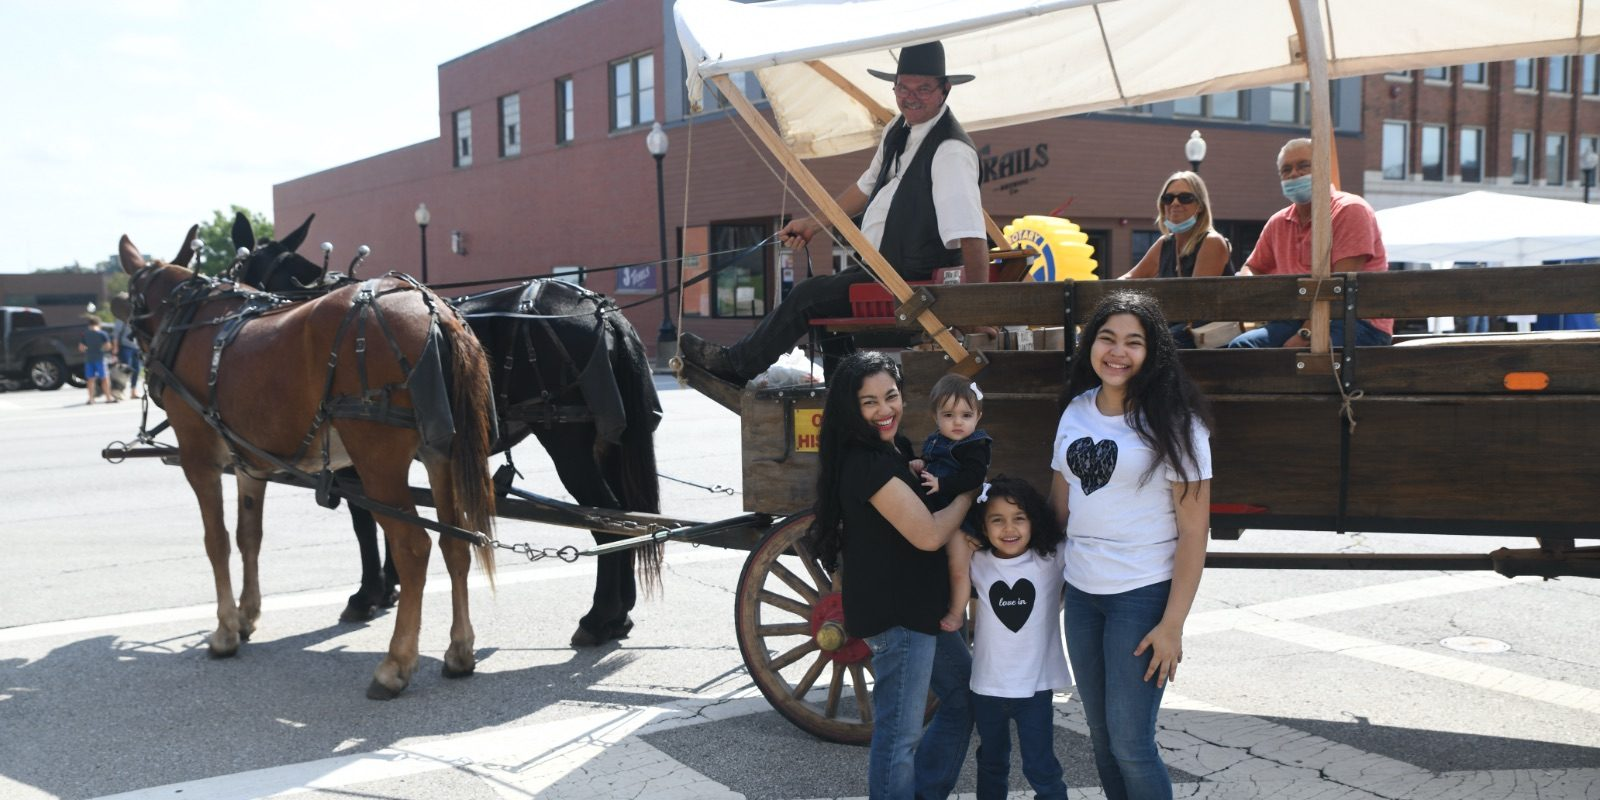 Elayna Fernández and her daughters pose in front of a Pioneer Trails Adventures wagon in Independence, MO